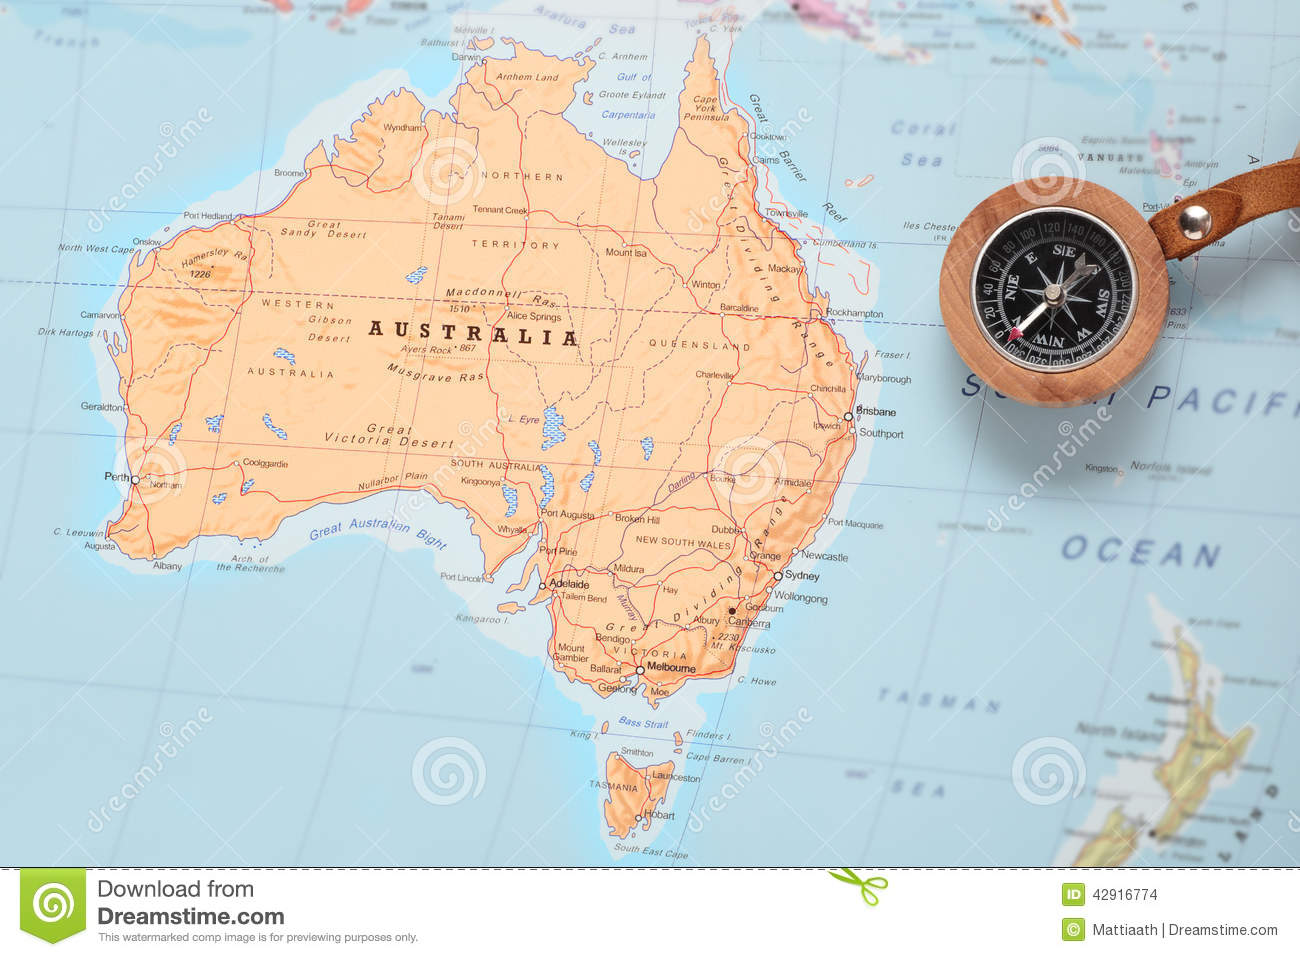 Australia Map And Travel Case With Stickers my Photos – Travel Maps Australia